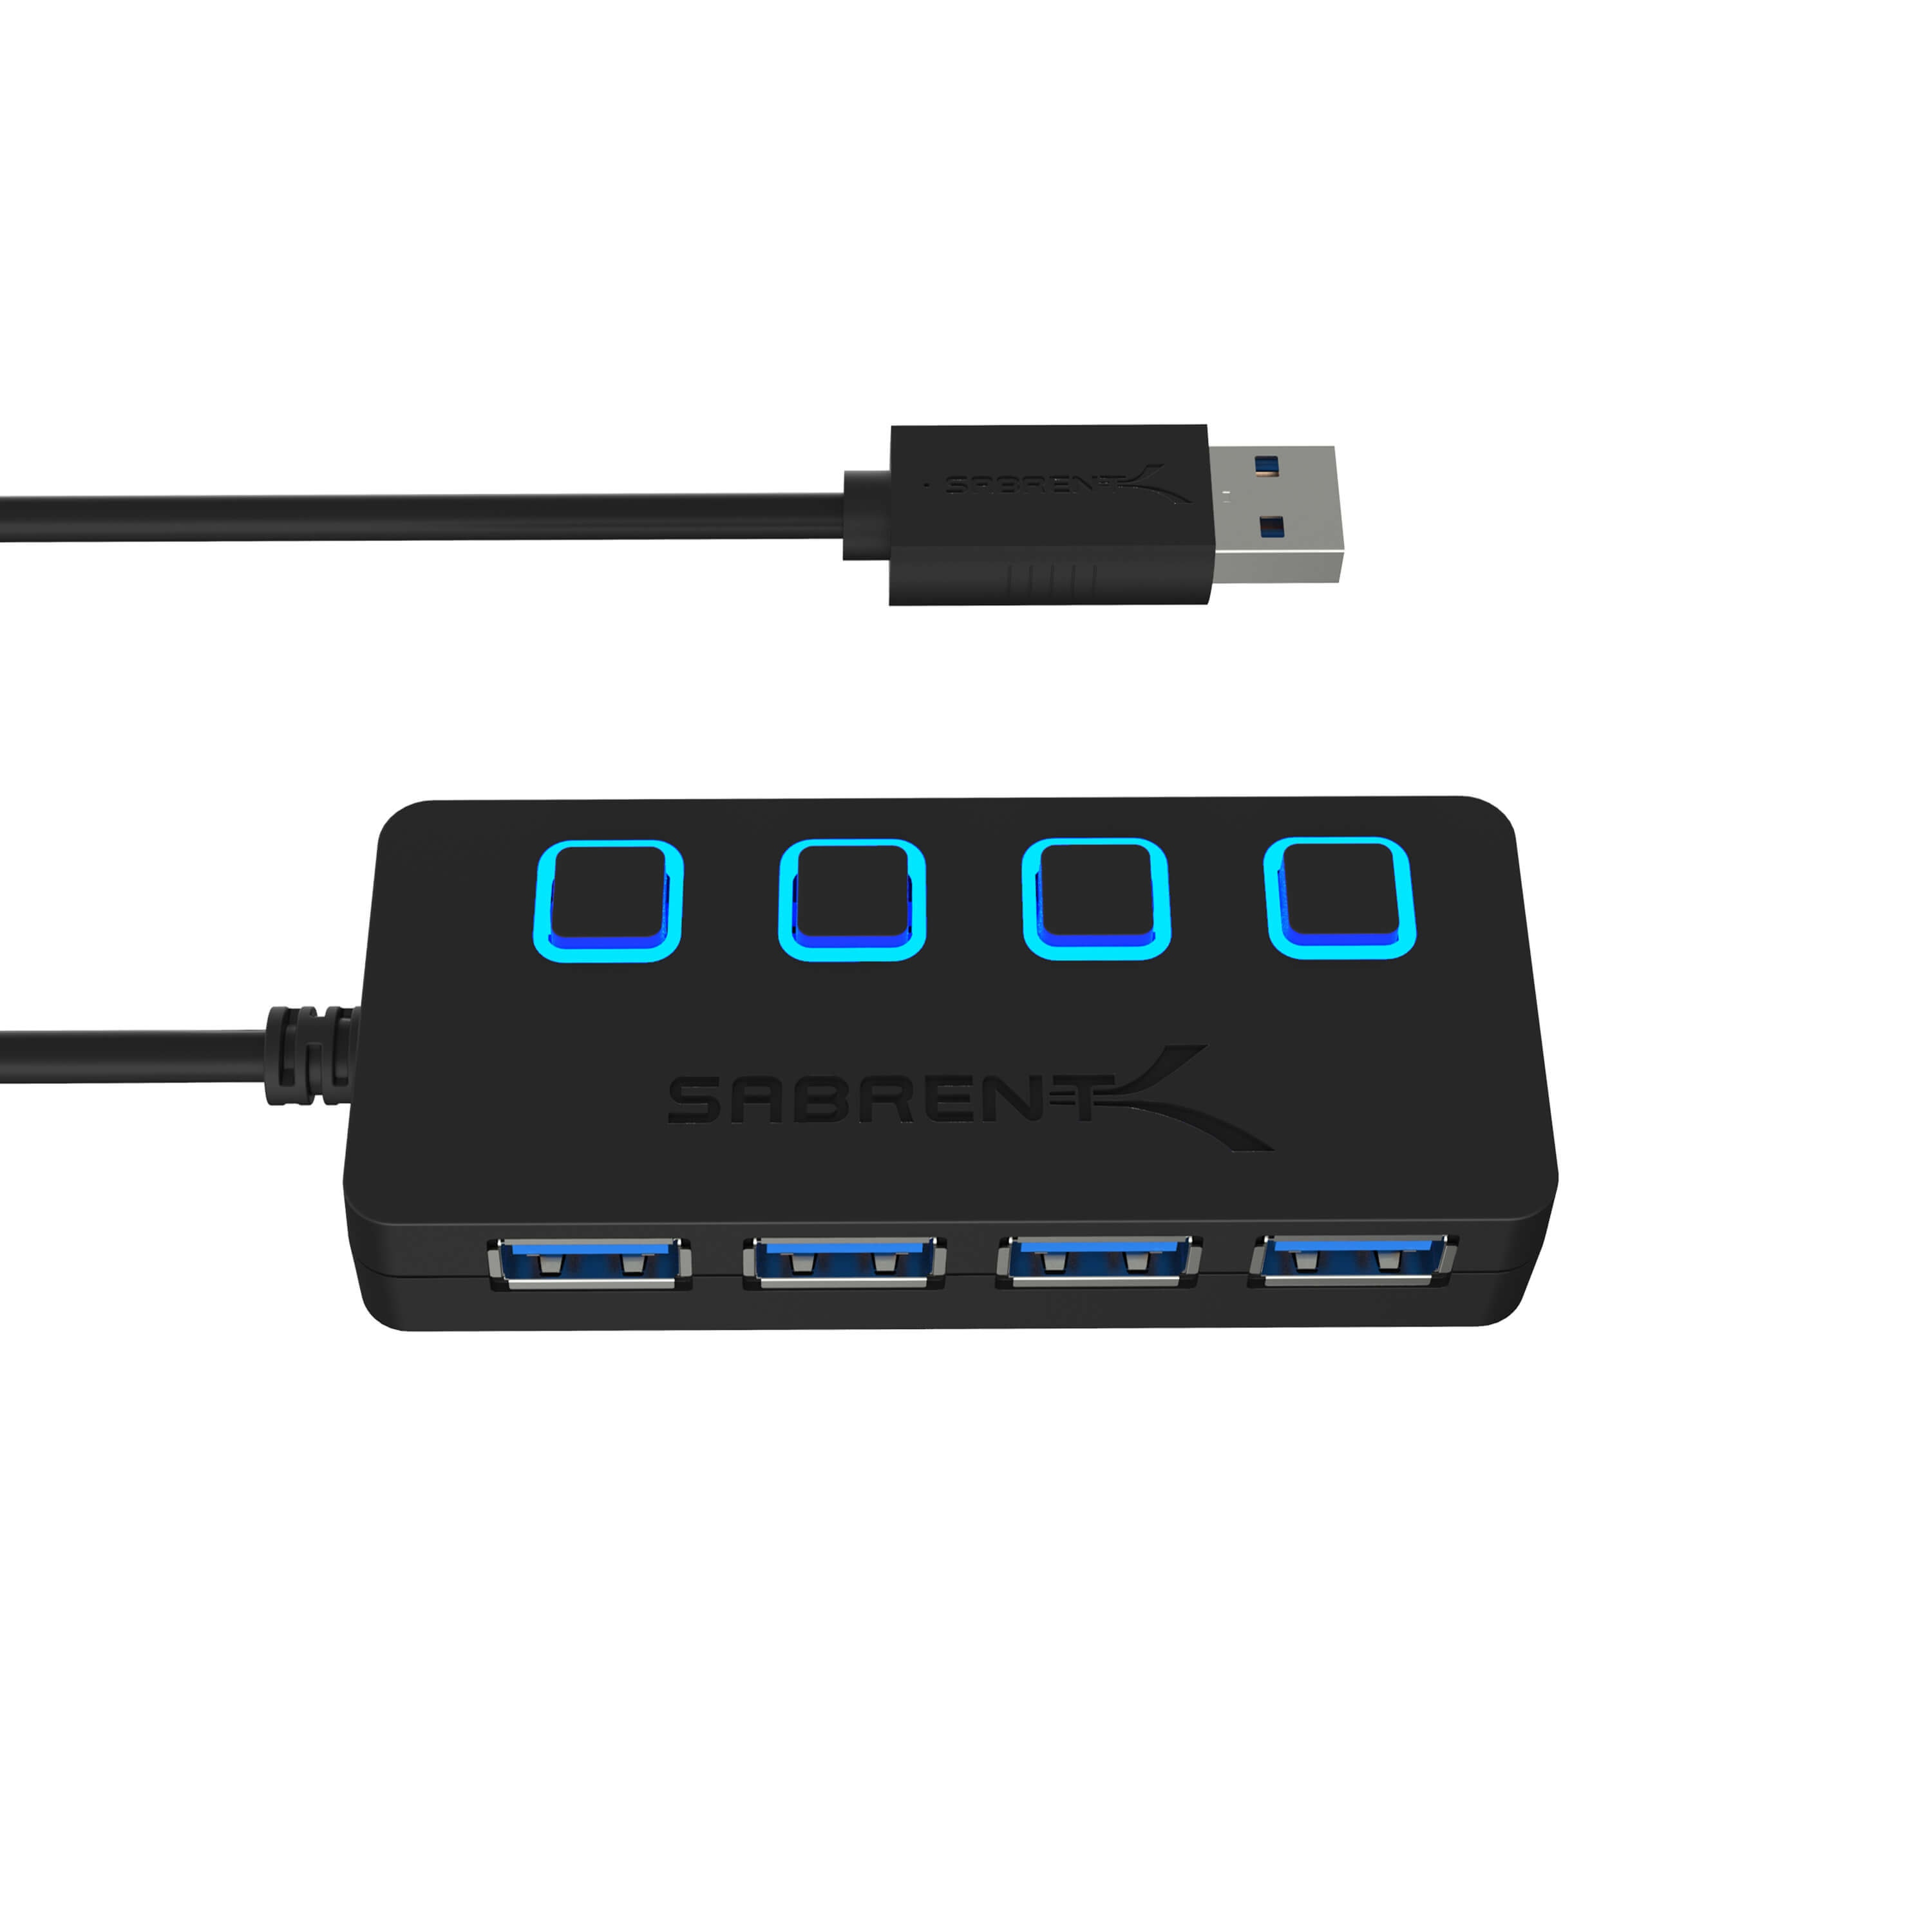 Sabrent 4-Port USB 3.0 Hub With Power Adapter